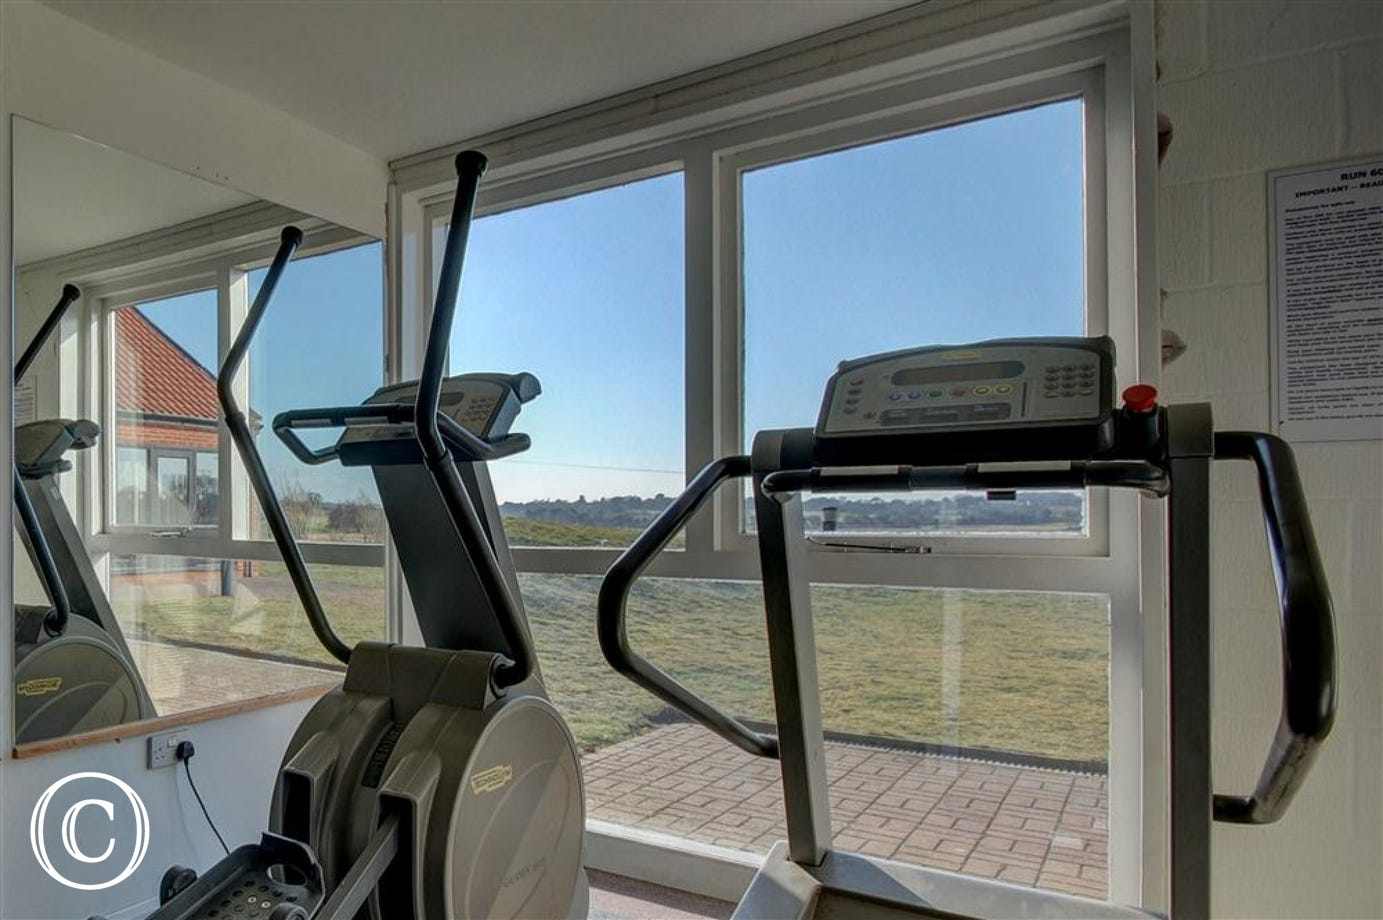 Go for a slow walk come rain or shine on this treadmill in the gym within the Leisure Hall with the fields as a view.